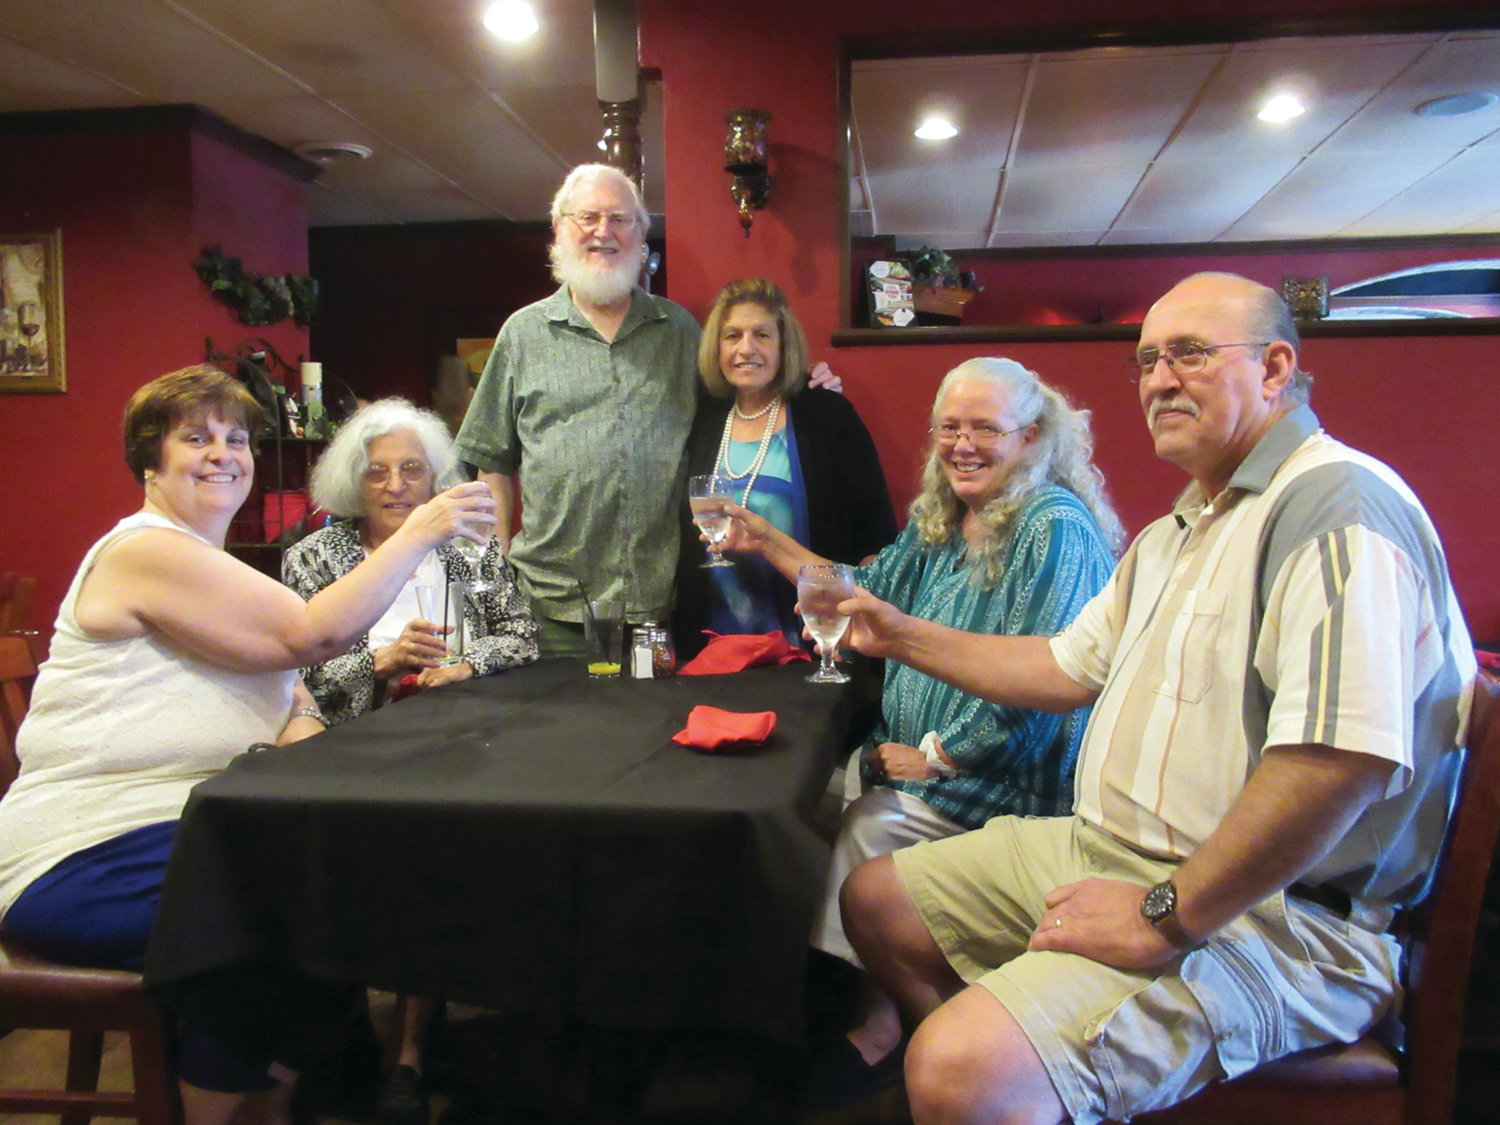 FAMILY FRIENDS: Louis McGowan, right, is joined by Rico Razza, his sister Adrienne McGowan, Warren and Ellen Lanpher and his wife Bel McGowan during a surprise birthday brunch.